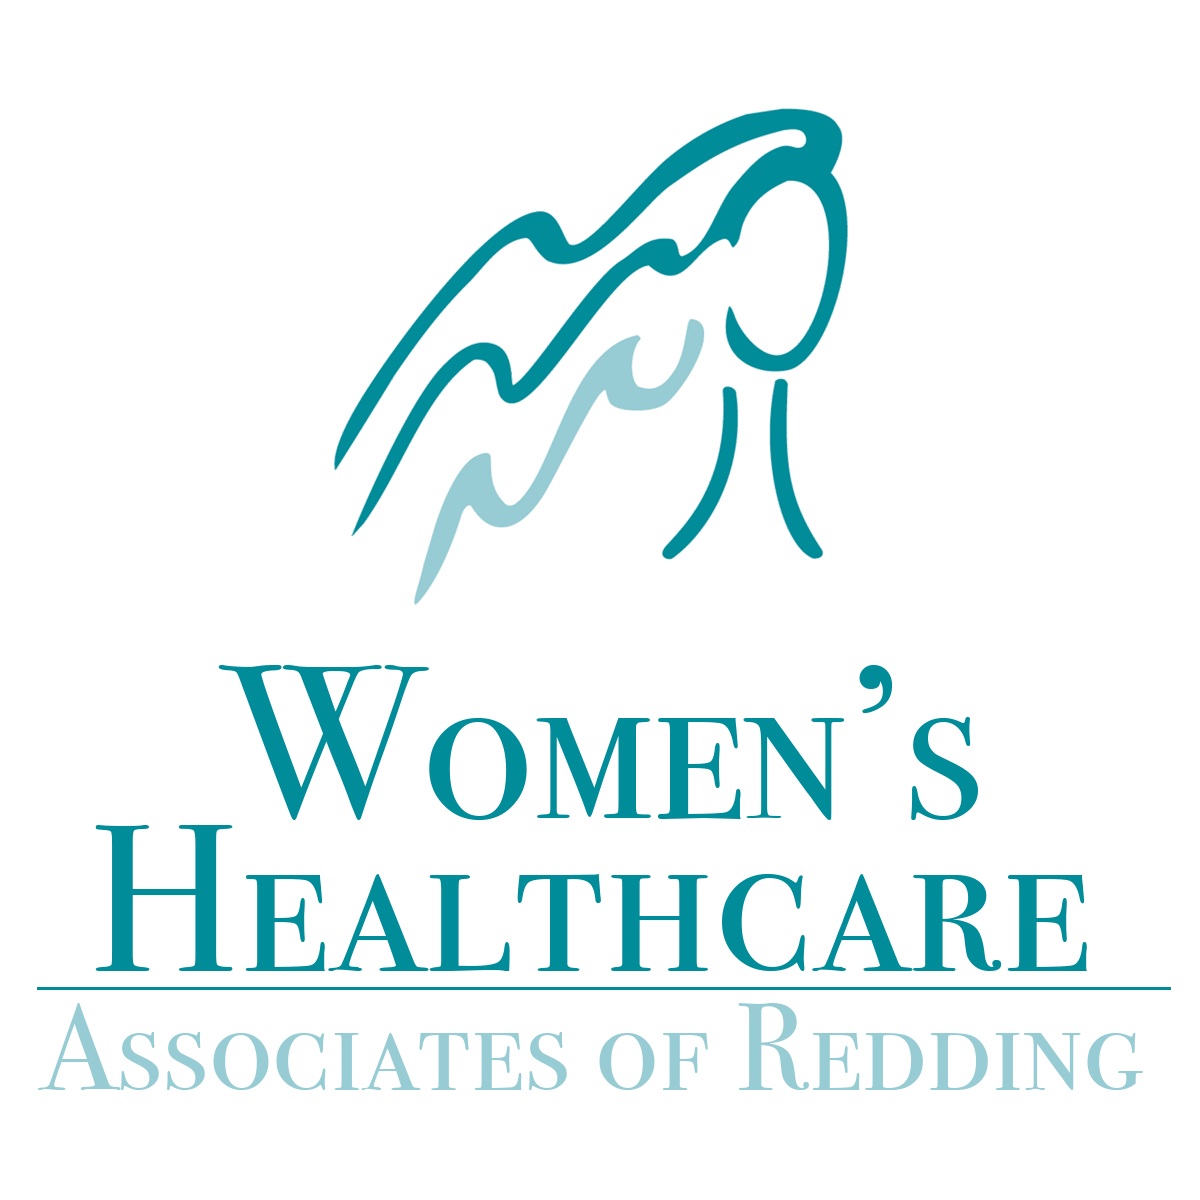 Women's Healthcare Associates of Redding